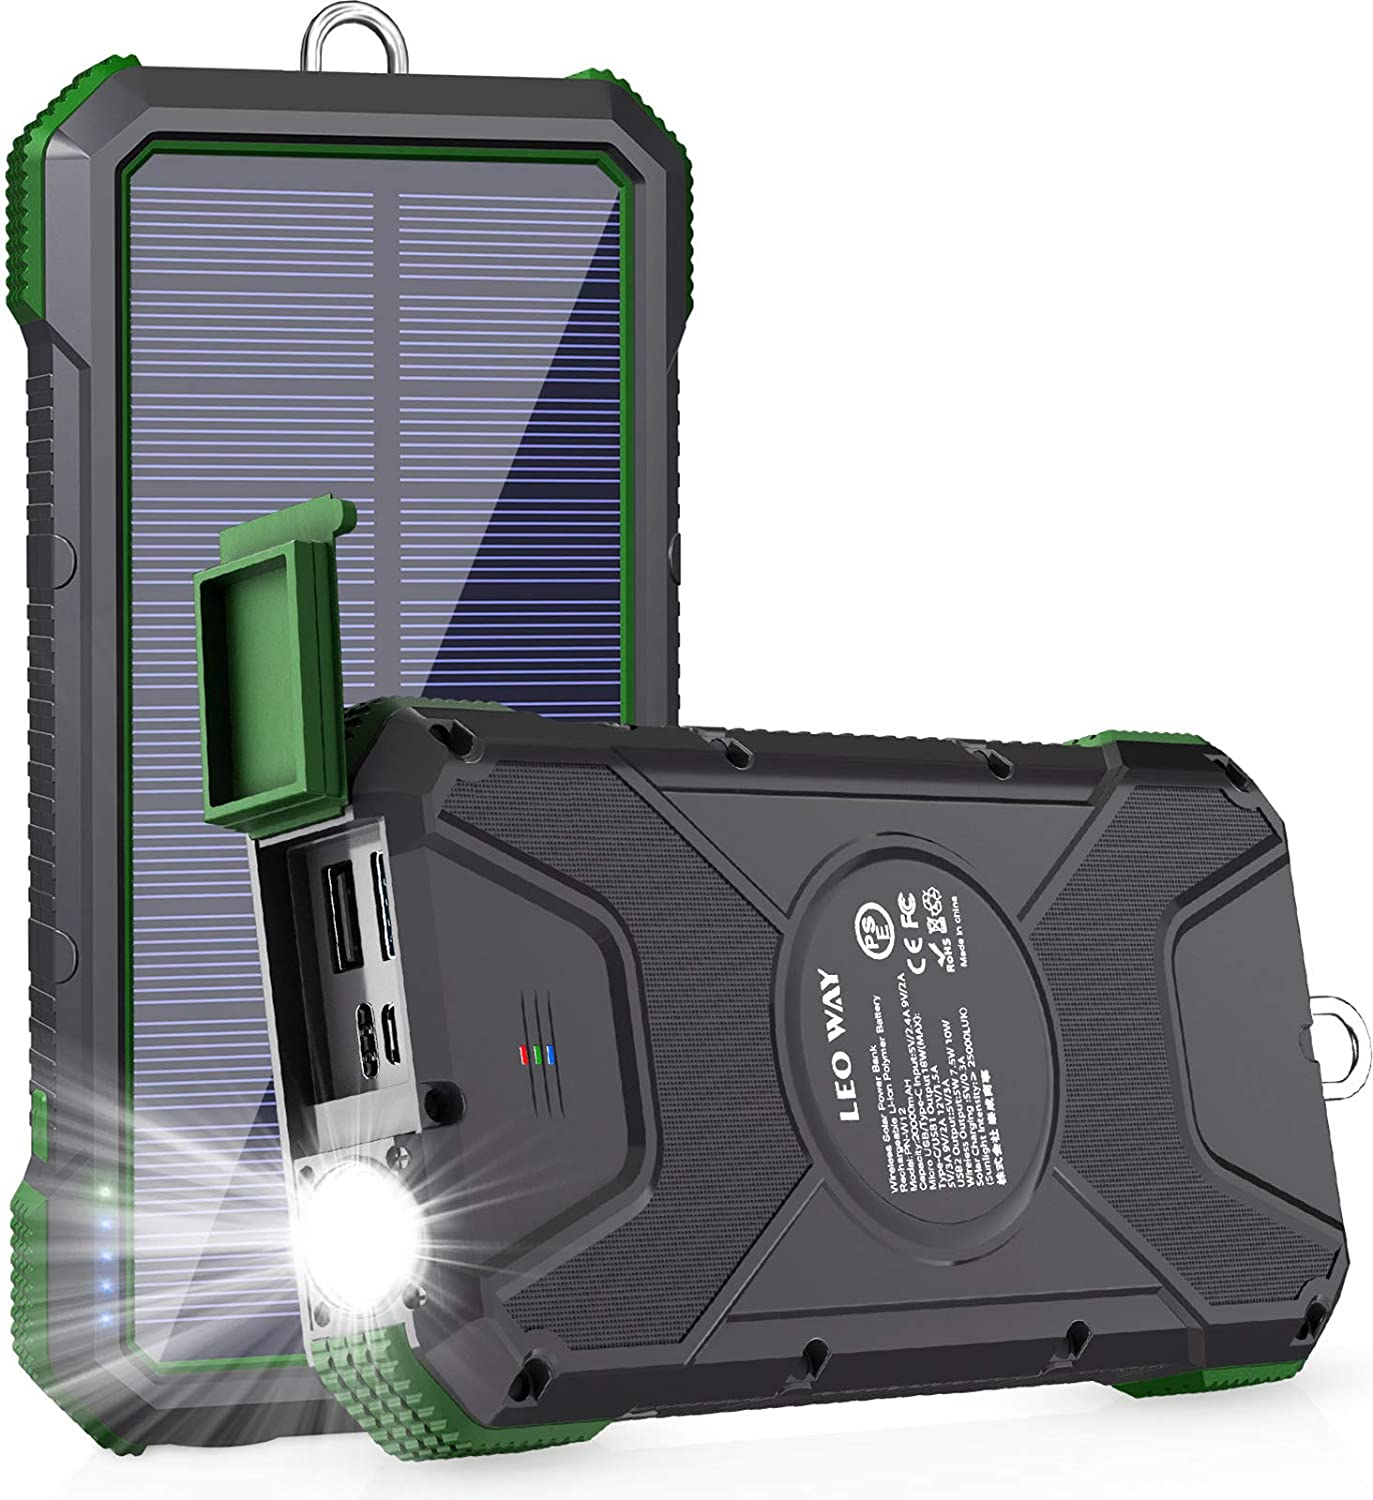 Solar Power Bank,Solar Charger,20000mAh PD 18W& QC3.0 Fast Charger for Green